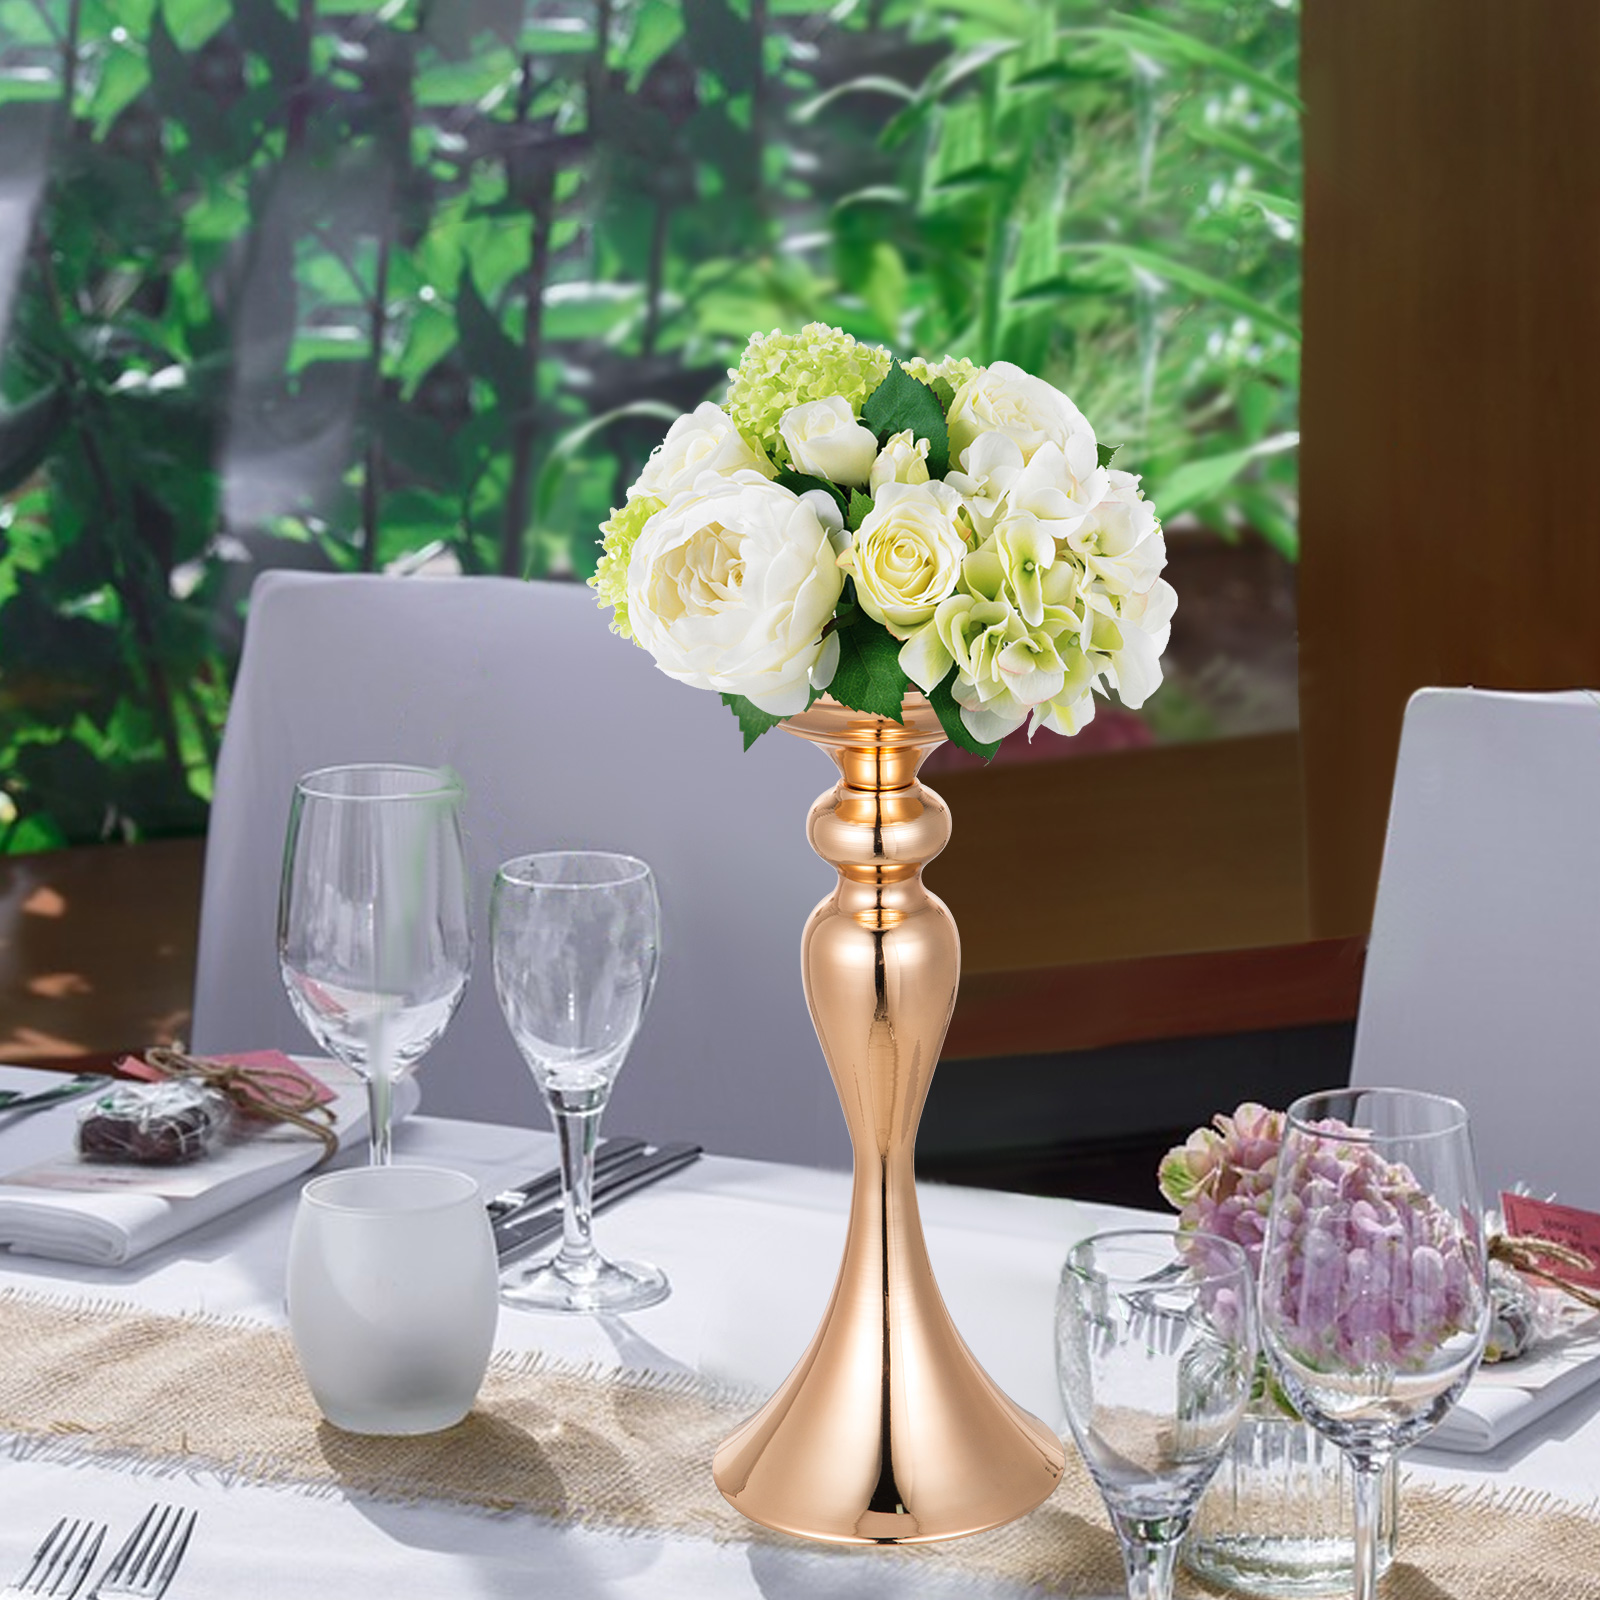 Flower-Rack-for-Wedding-Metal-Candle-Stand-4-11pcs-Centerpiece-Flower-Vase thumbnail 189